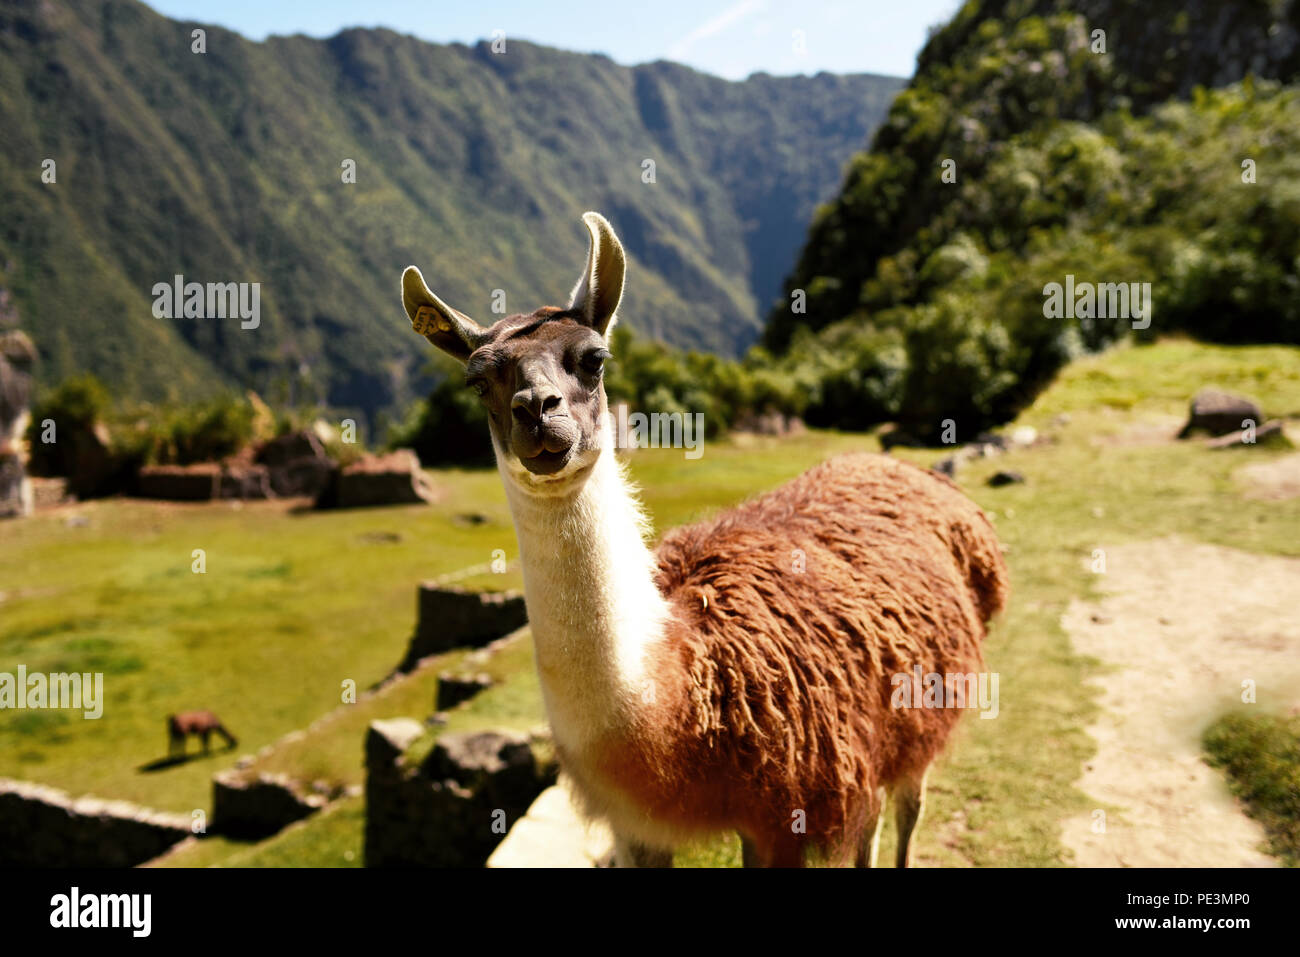 Curious llama looking straight to the camera at Machu Picchu. Cuzco region, Peru. Jul 2018 - Stock Image